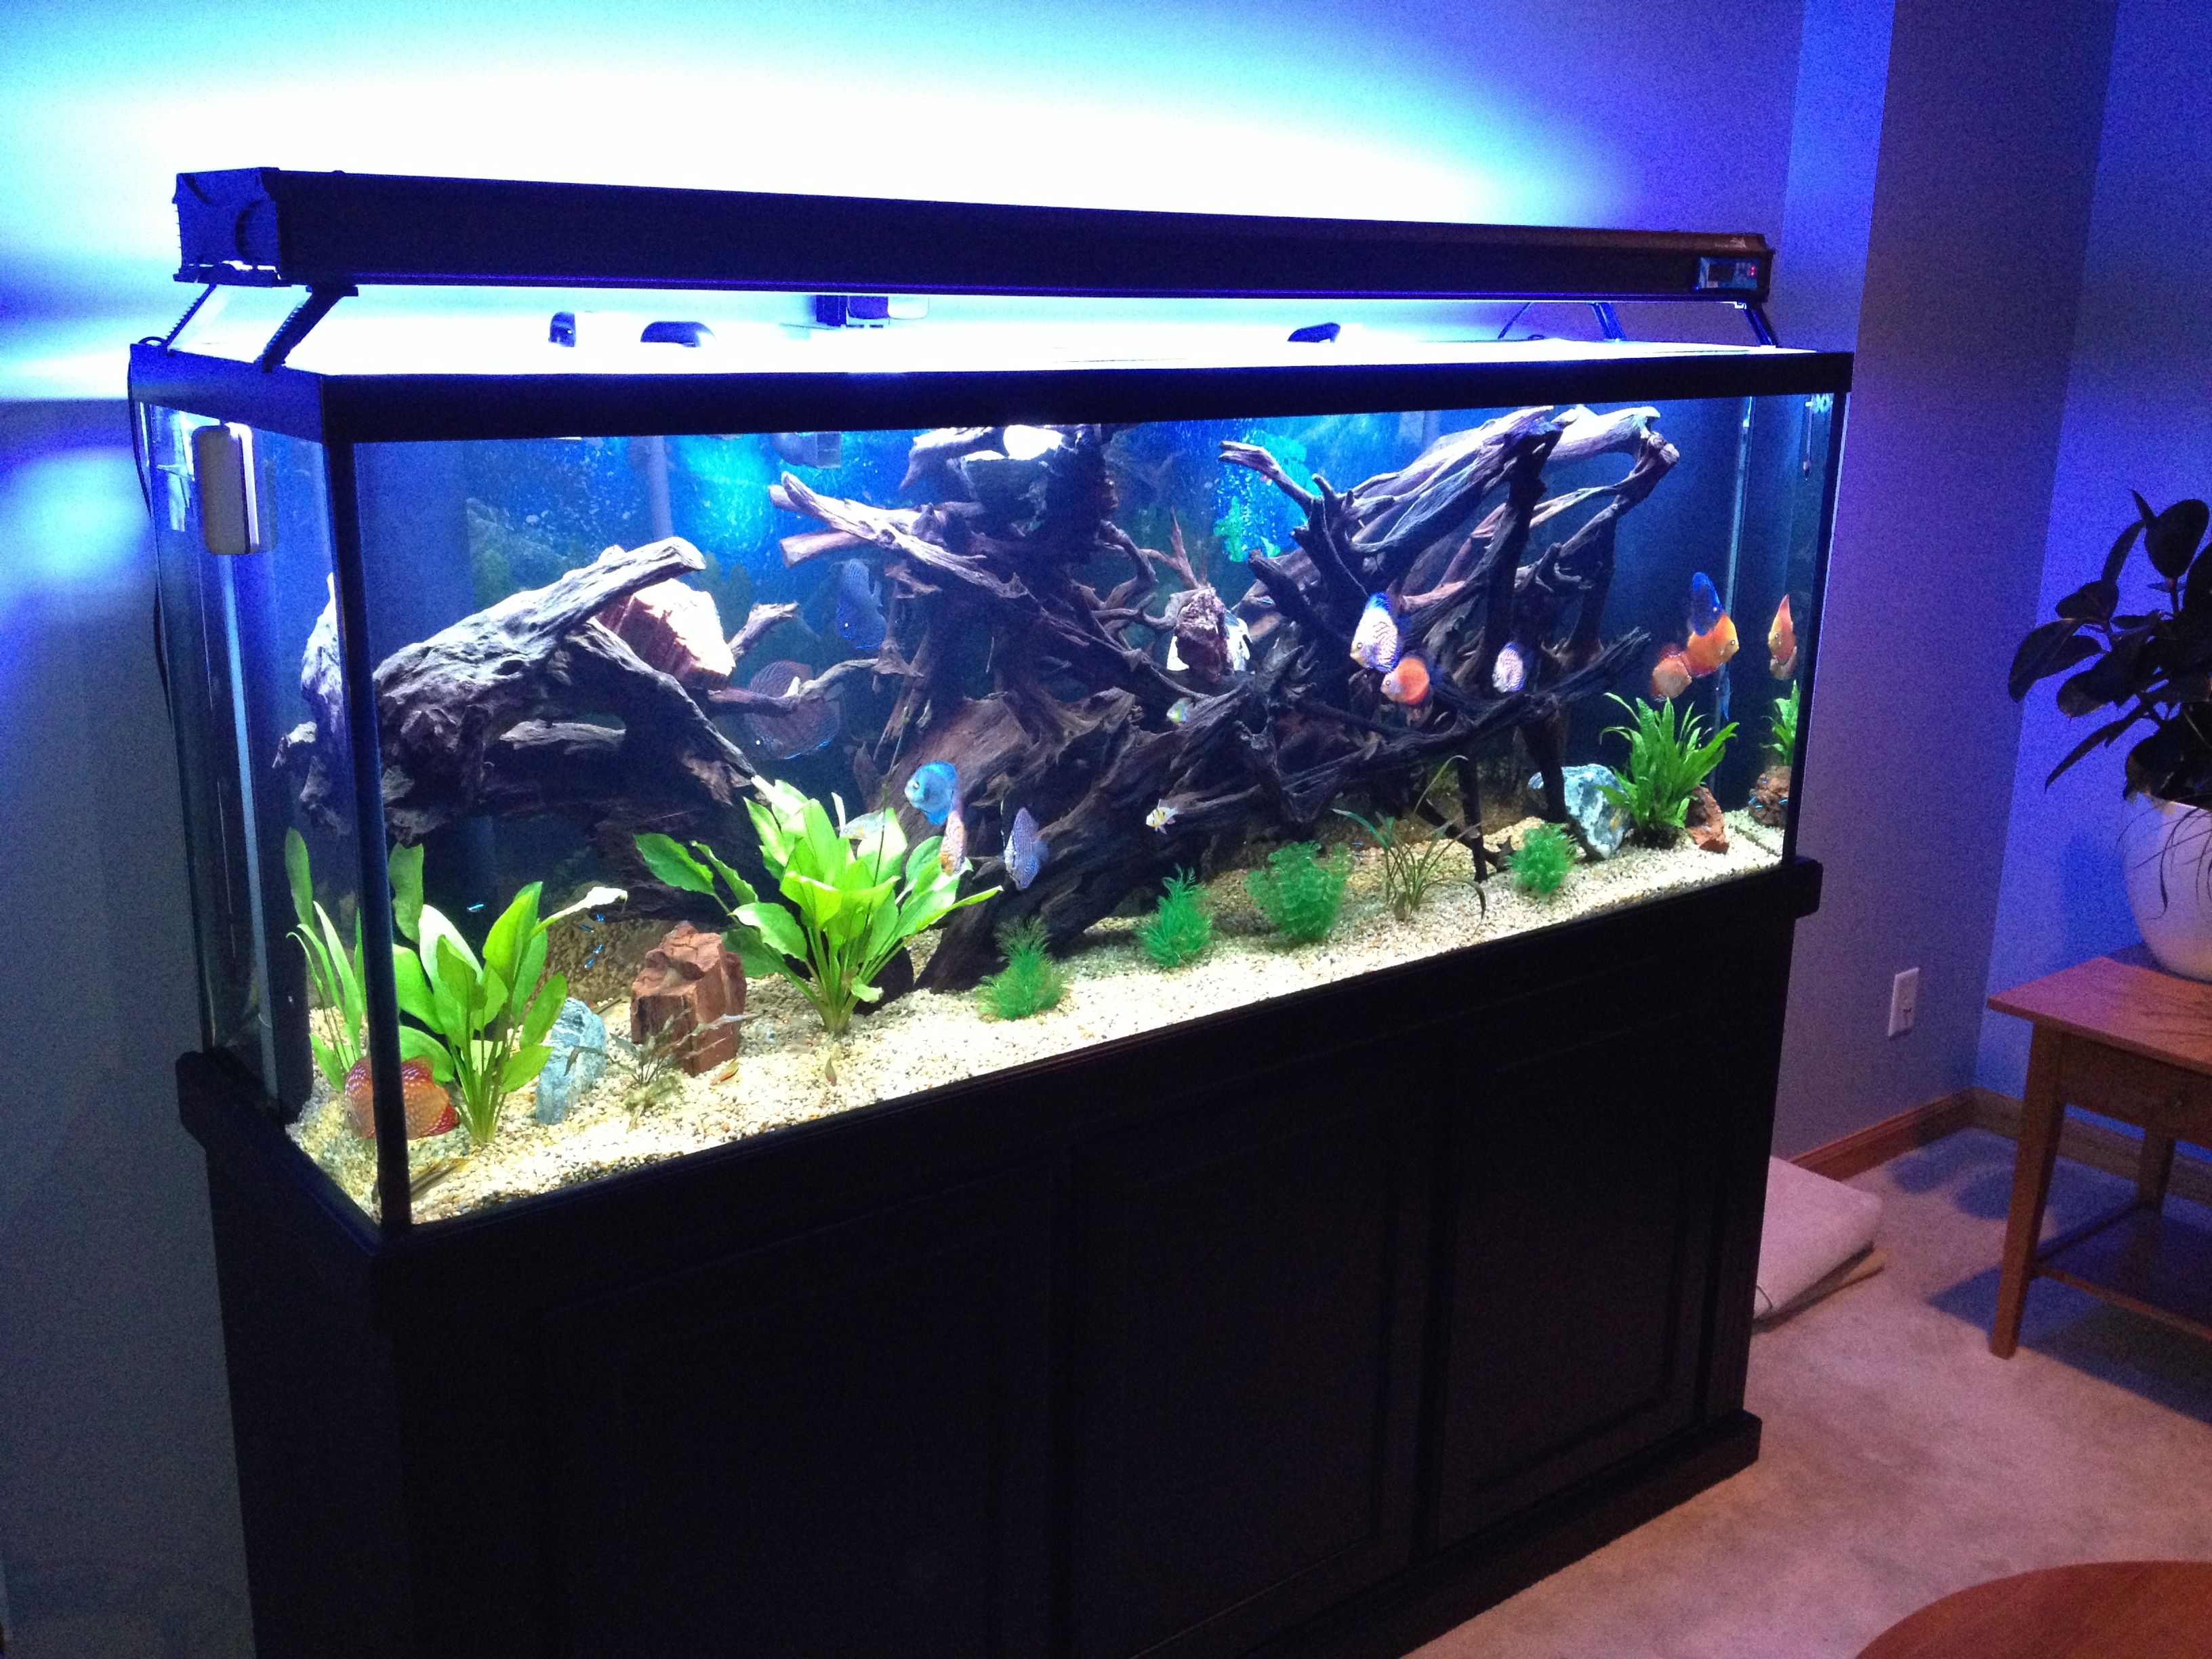 Fish aquarium bed frame - 17 Best Images About Fish Tanks On Pinterest Cichlids Aquascaping And Aquarium Ornaments